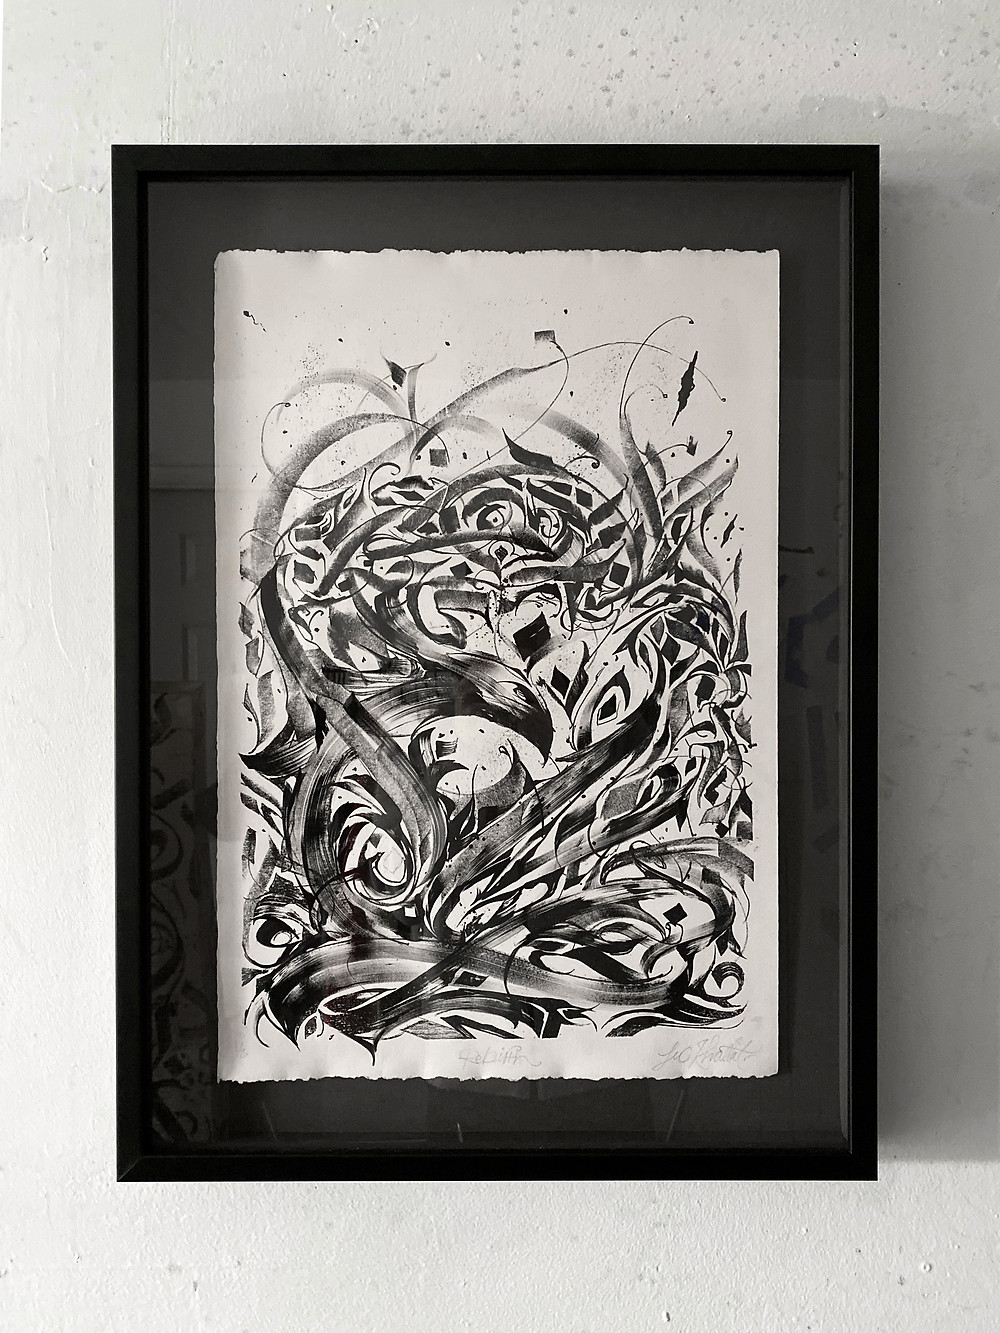 "Rebirth - Lithography Print on Archival Paper 19""x13"" This piece was my first exploration into lithography printing. I worked with the image of a phoenix and was interested in exploring the ideas of rebirth and cycles through an abstracted mandala ring around the phoenix."